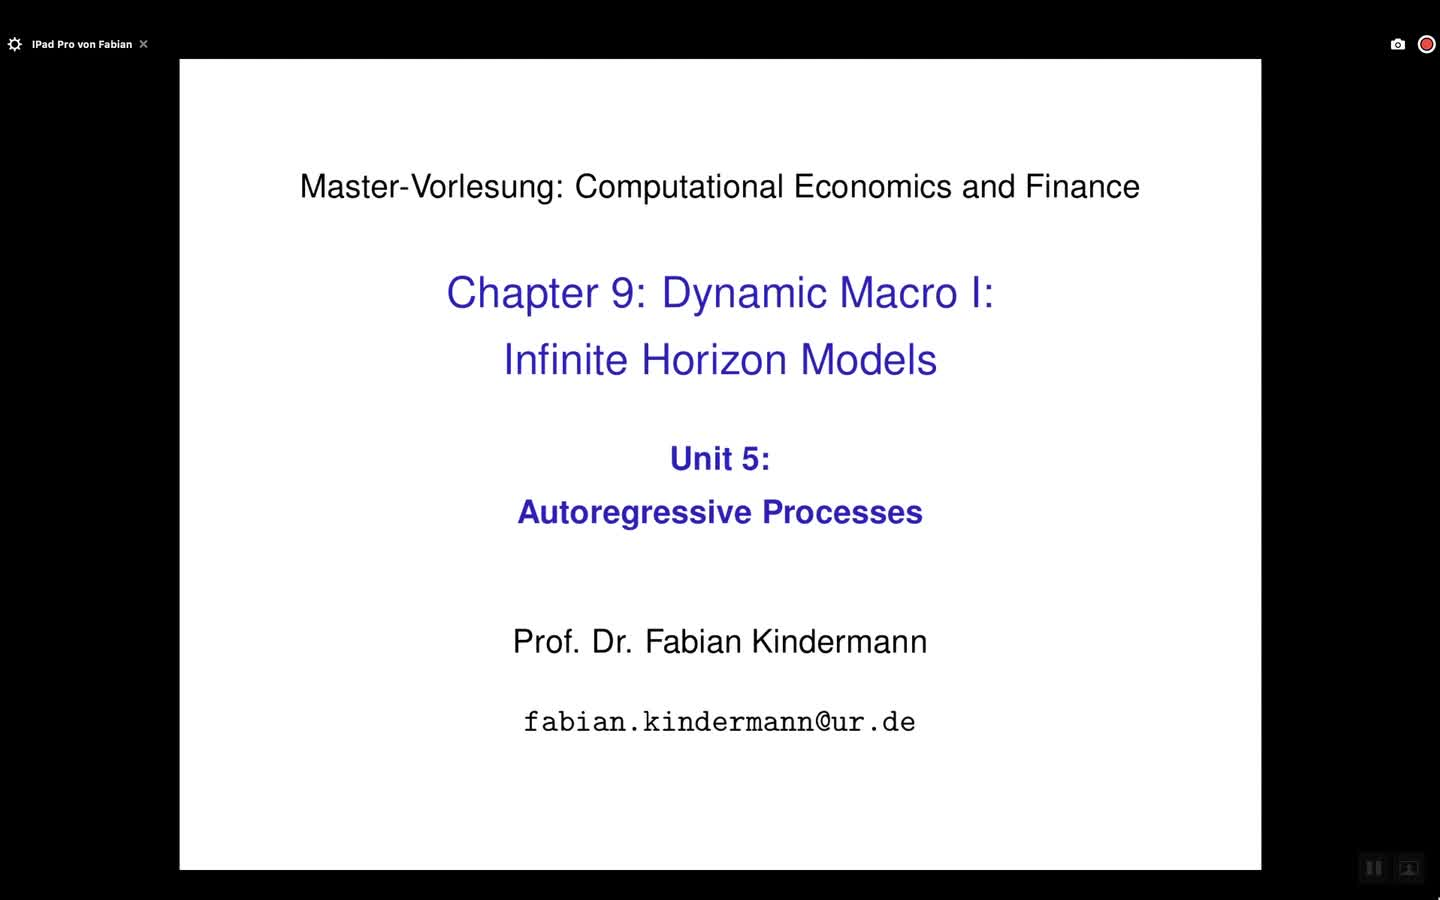 Chapter 9 - Unit 5 - Autoregressive Processes